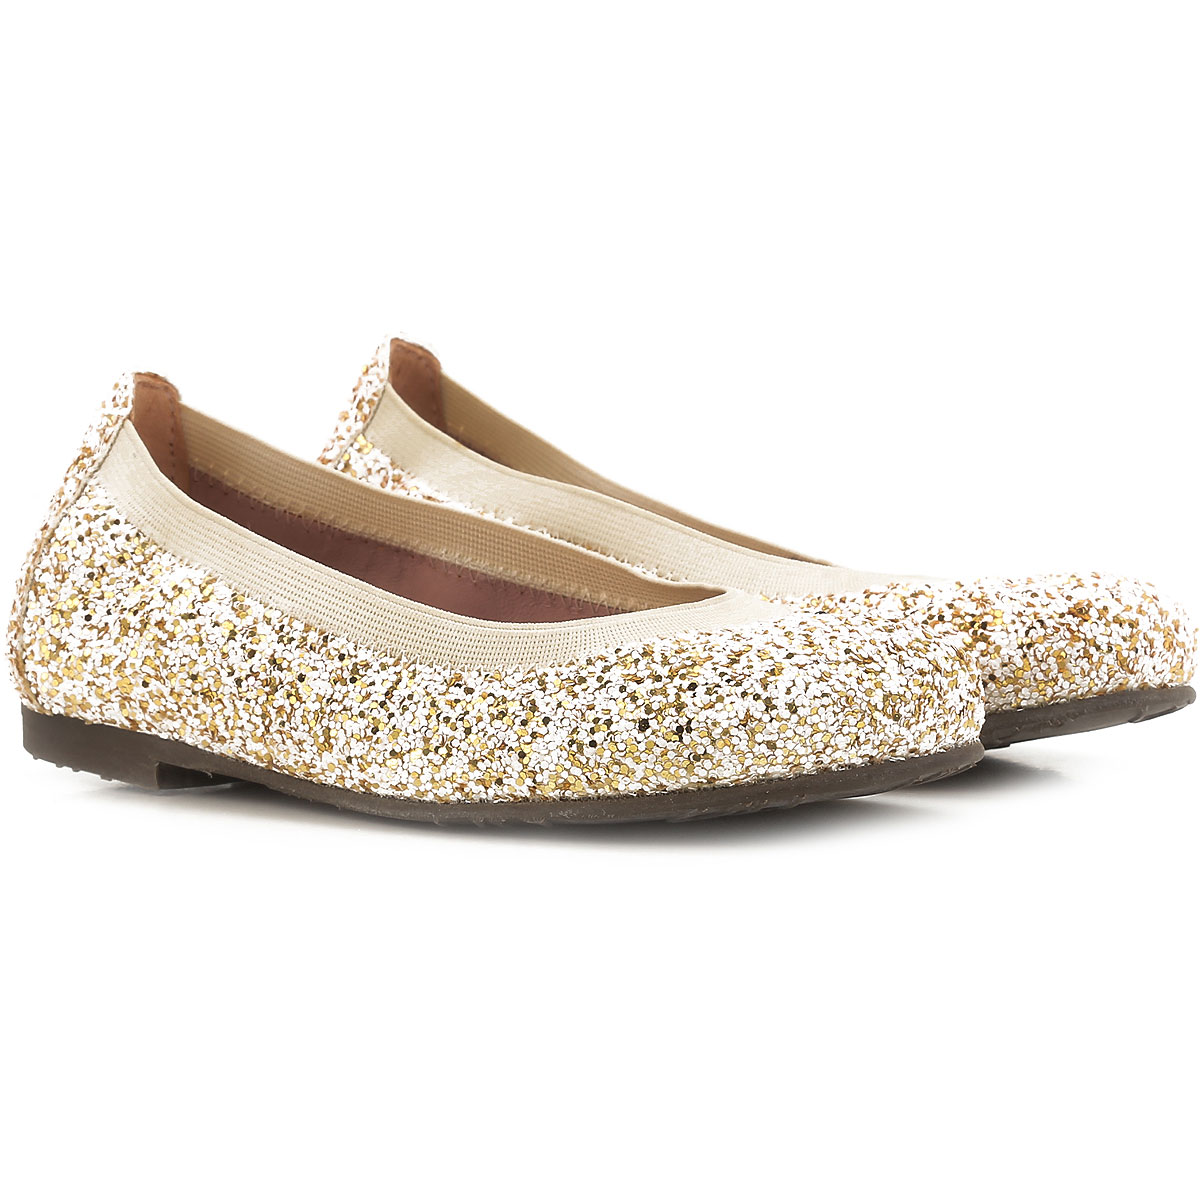 Image of Pretty Ballerinas Kids Shoes for Girls On Sale in Outlet, Cream, Glitter, 2017, 31 32 33